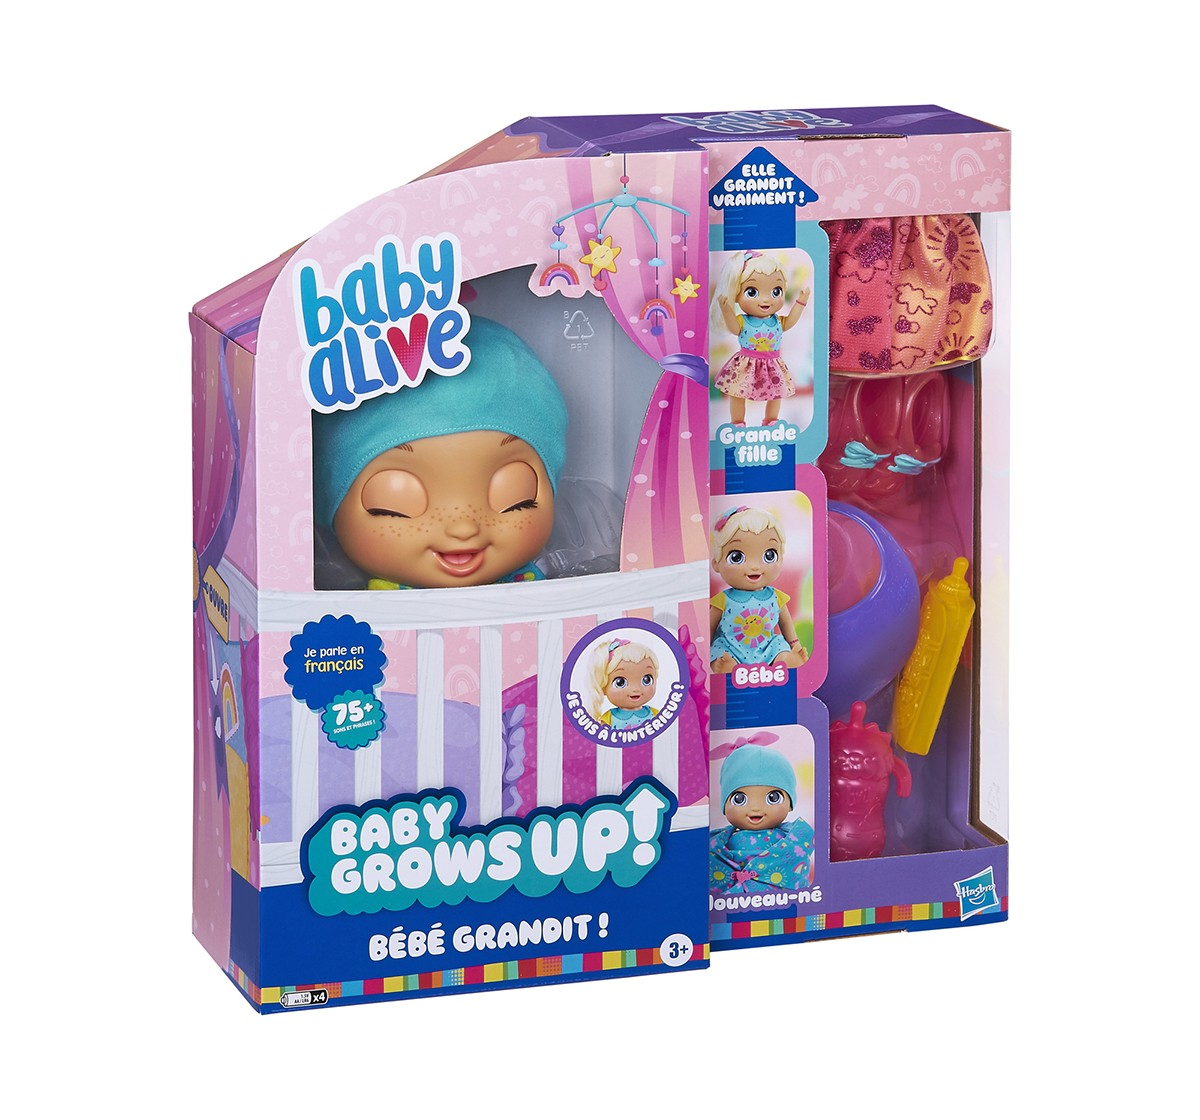 Baby Alive Baby Grows Up (Happy) - Happy Hope or Merry Meadow, Growing and Talking Baby Doll Toy with Surprise Accessories  Dolls & Accessories for GIRLS age 3Y+